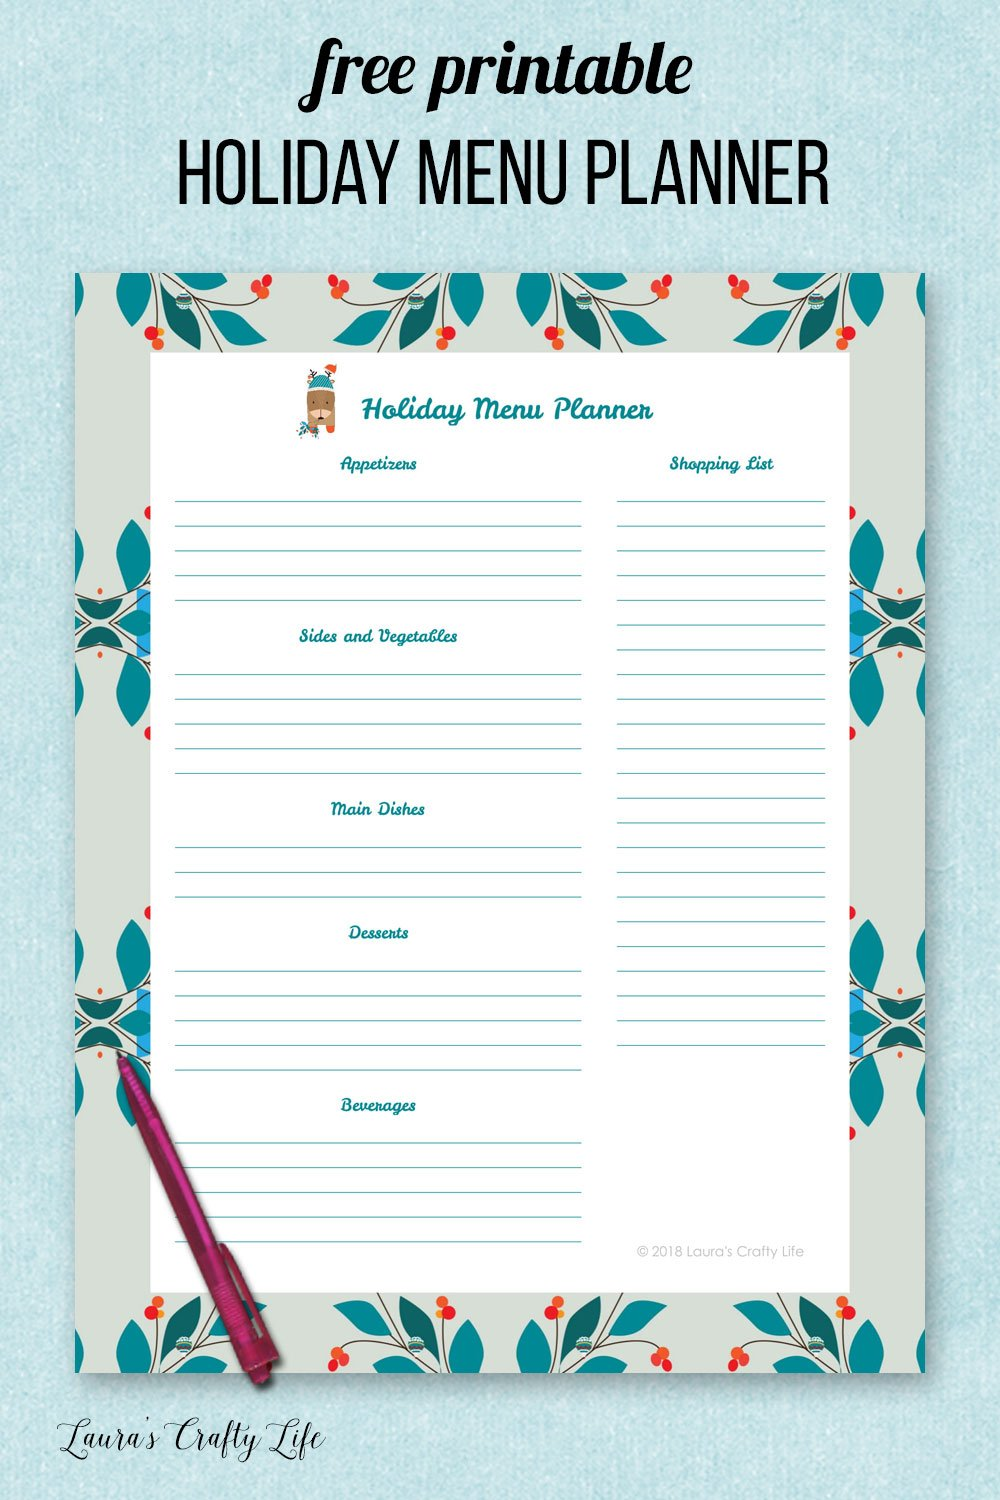 Free printable holiday menu planner. Organize your holiday with a holiday binder. #laurascraftylife #holiday #freeprintable #organize